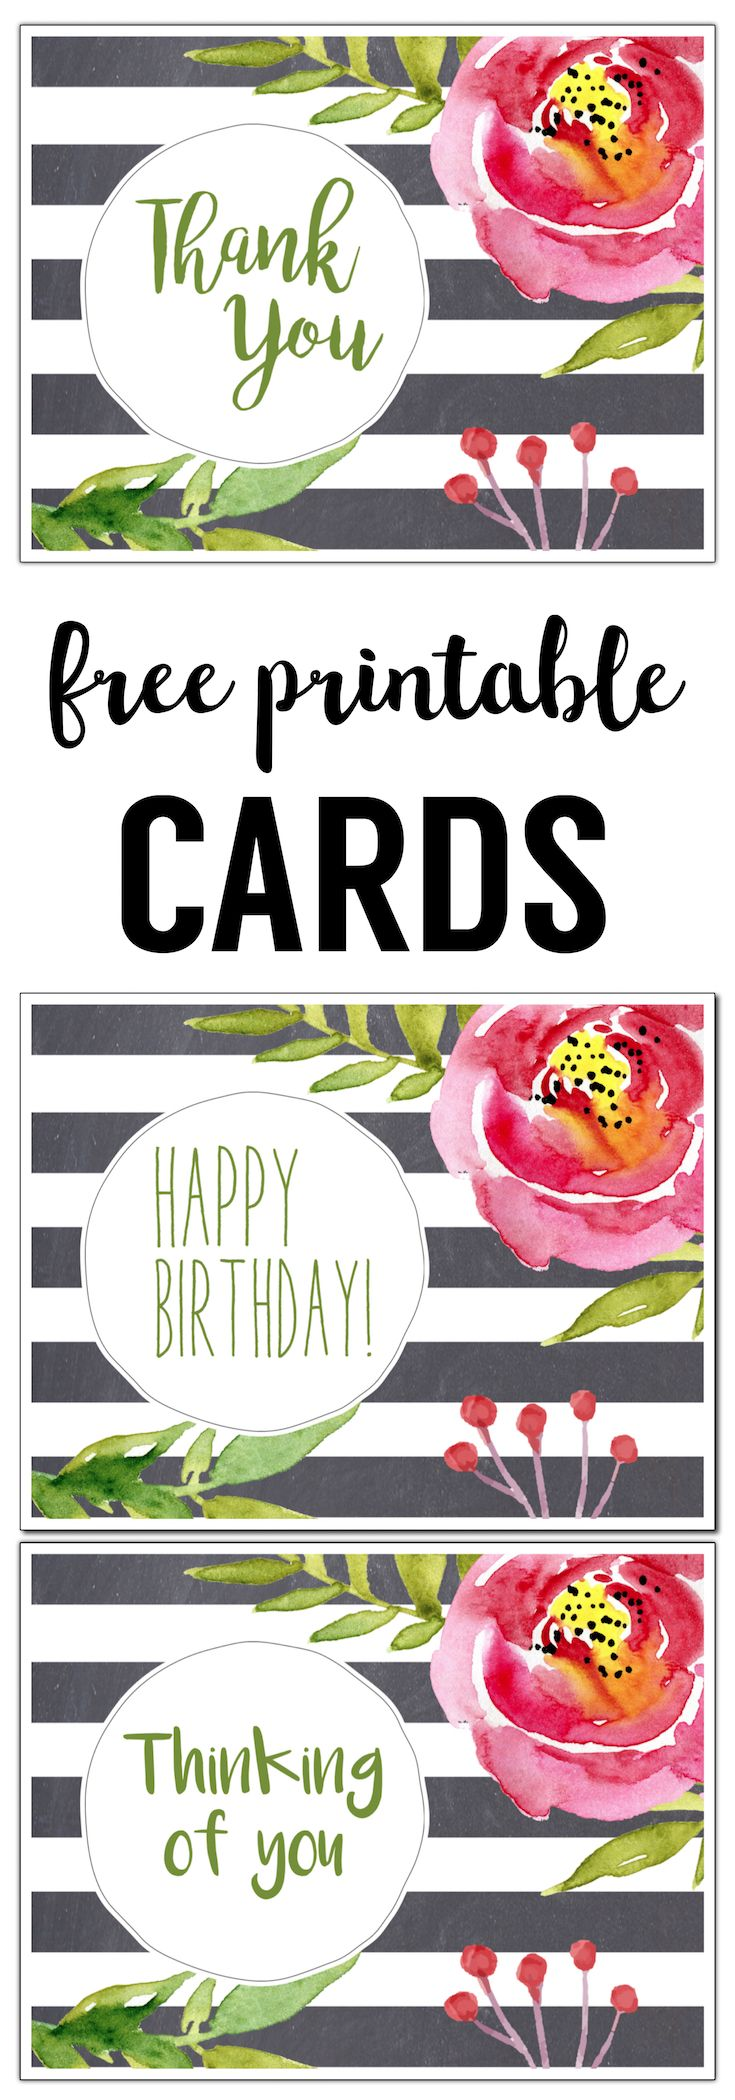 Free Printable Greeting Cards. Easy DIY watercolor floral cards. Free printable thank you card. Free printable birthday card. Thinking of you card.